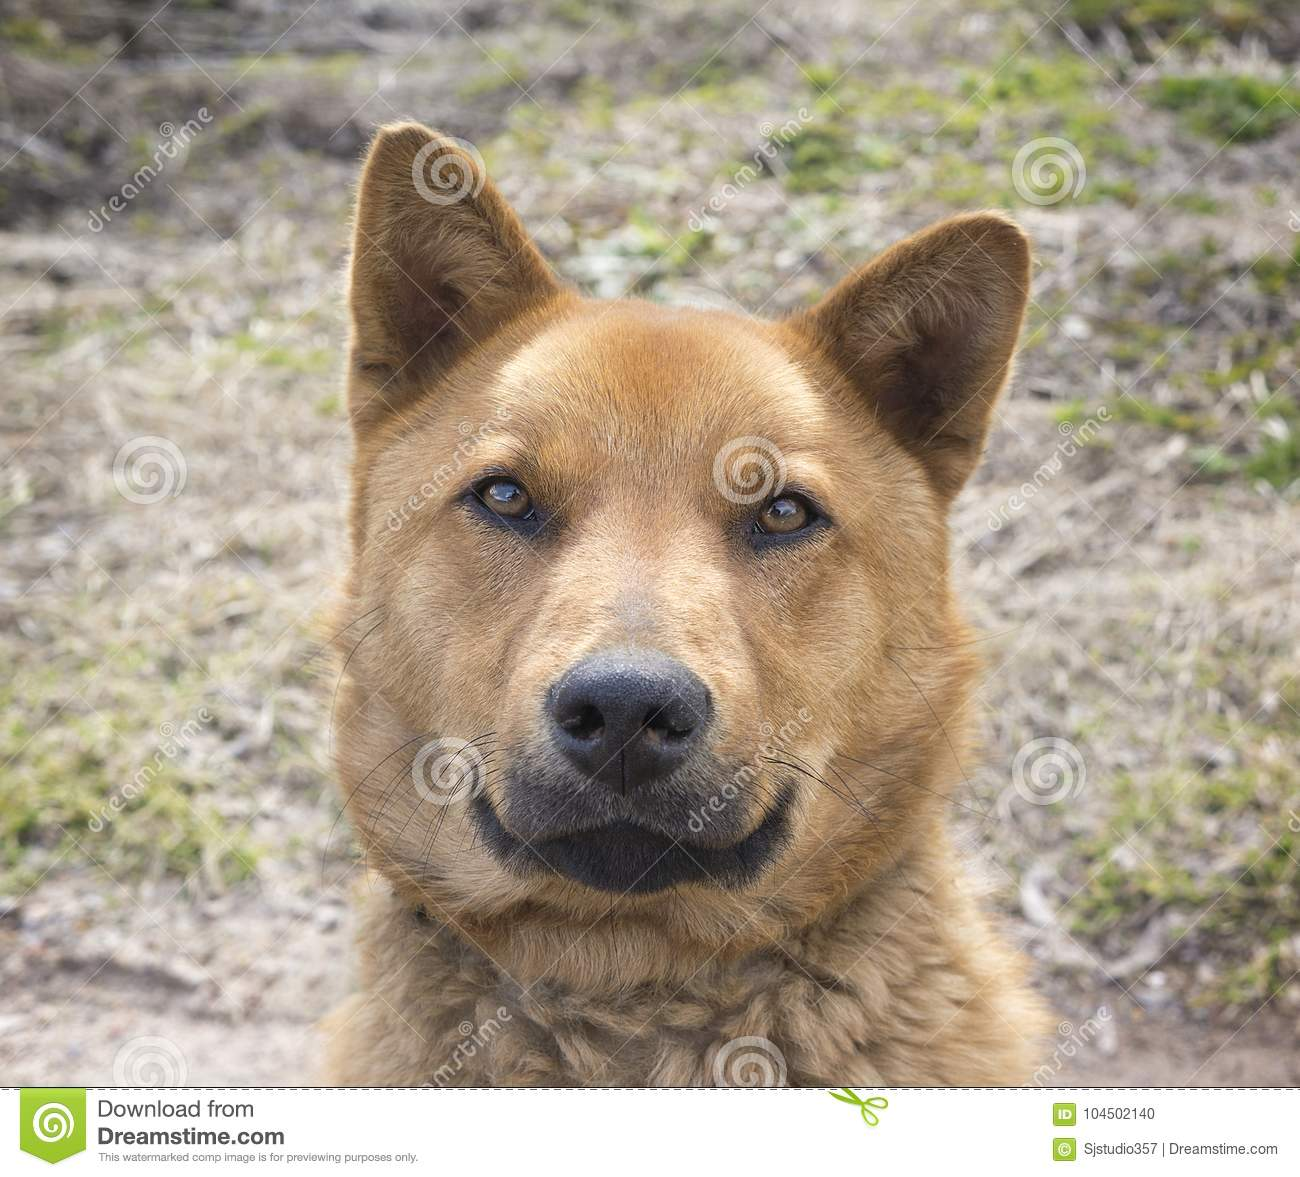 Dog Breed That Looks Like It S Smiling